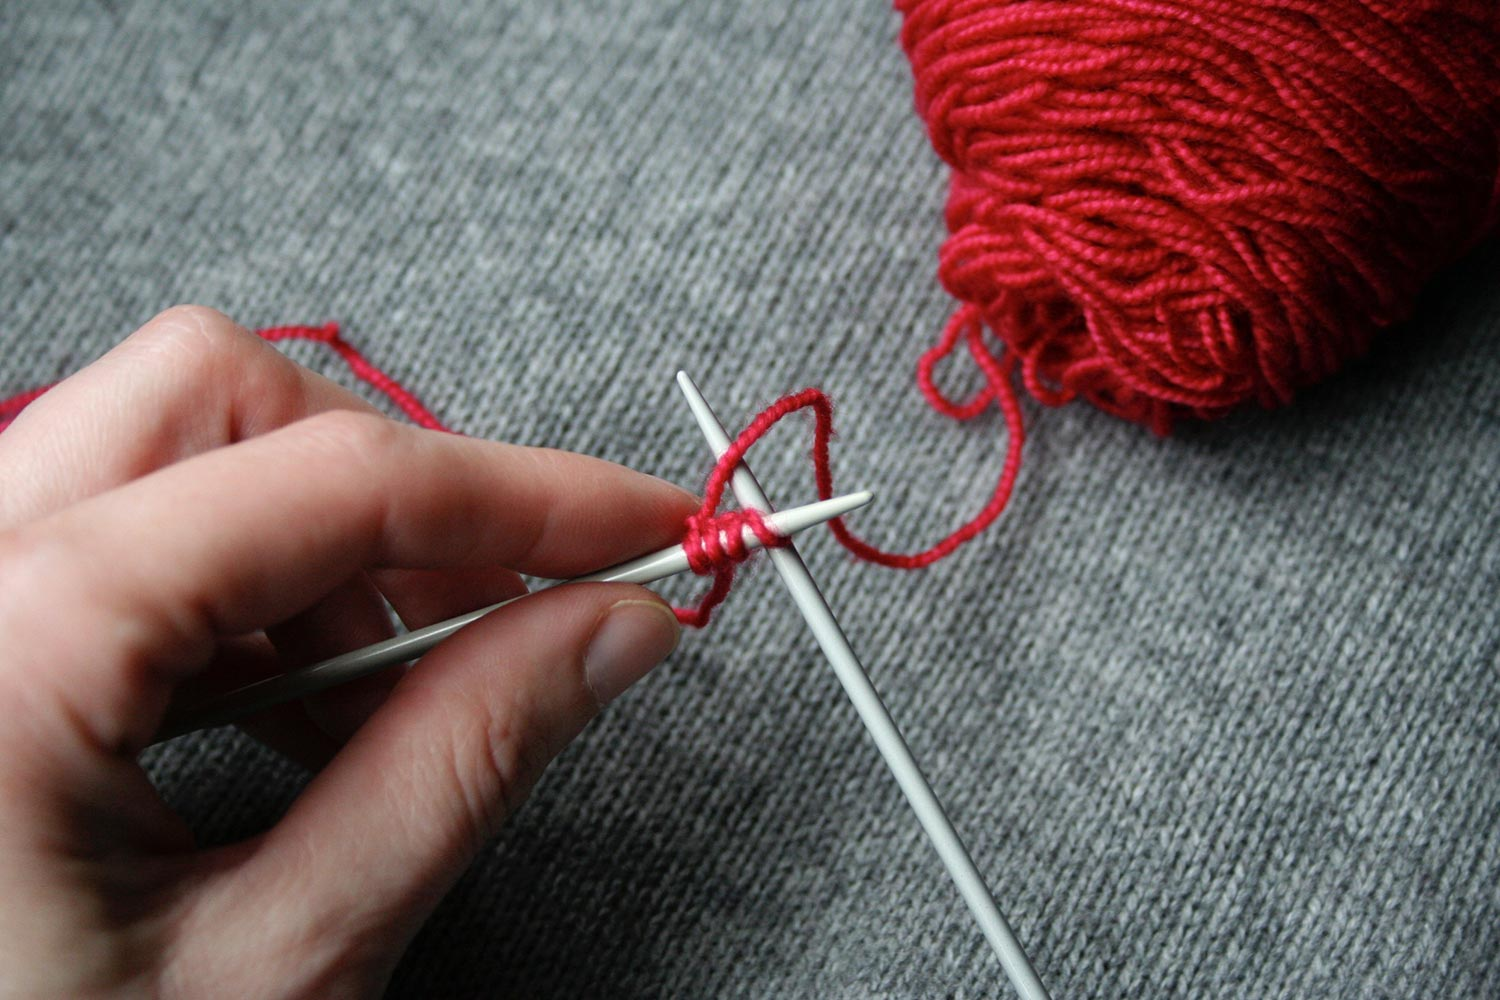 Right needle inserted knitwise into first stitch on left needle.